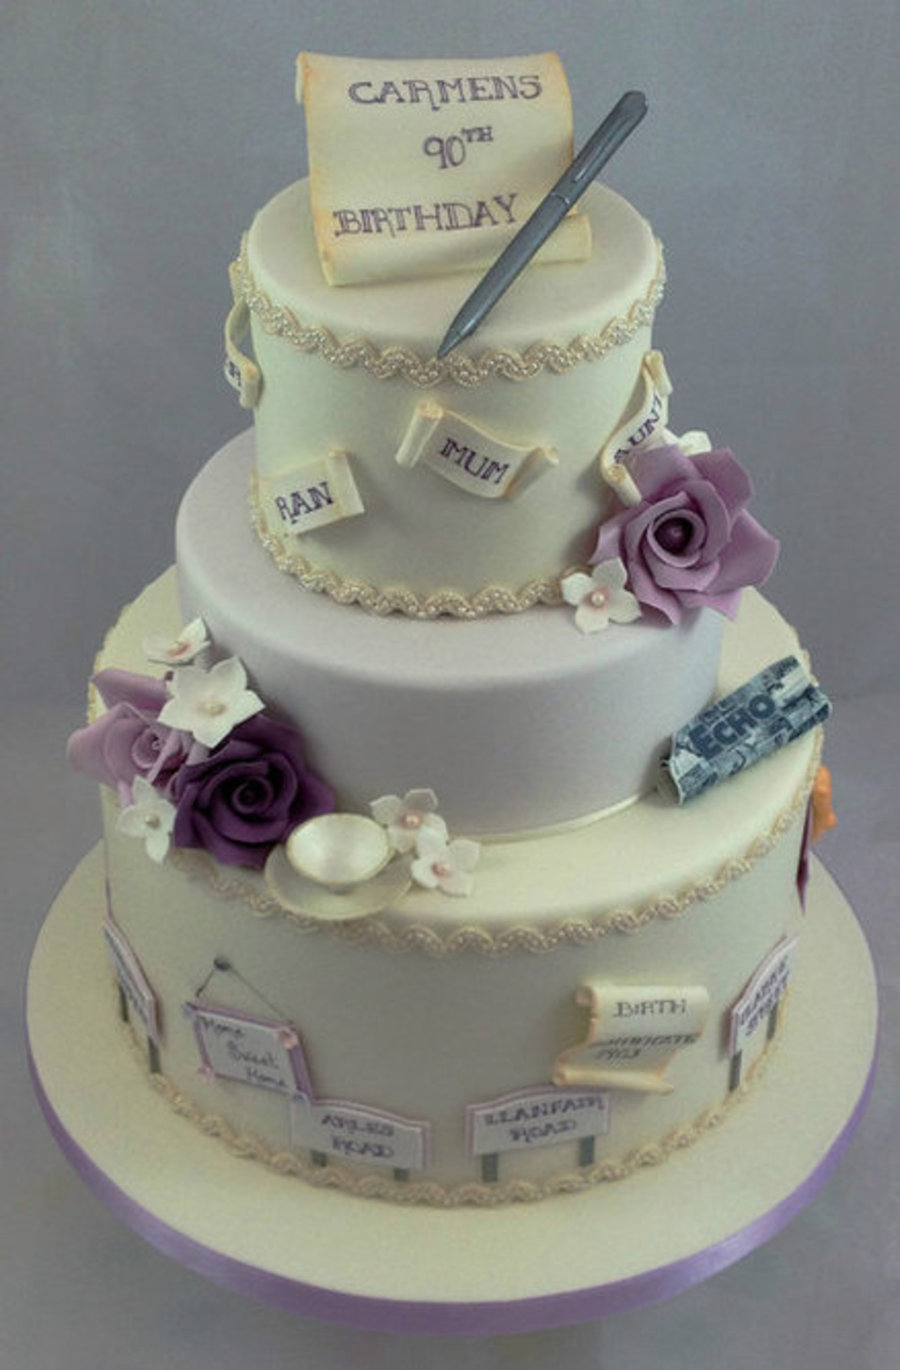 90Th Birthday Cake Ideas This 3 Tier 90th Birthday Cake Was A Very Special Order For Me As